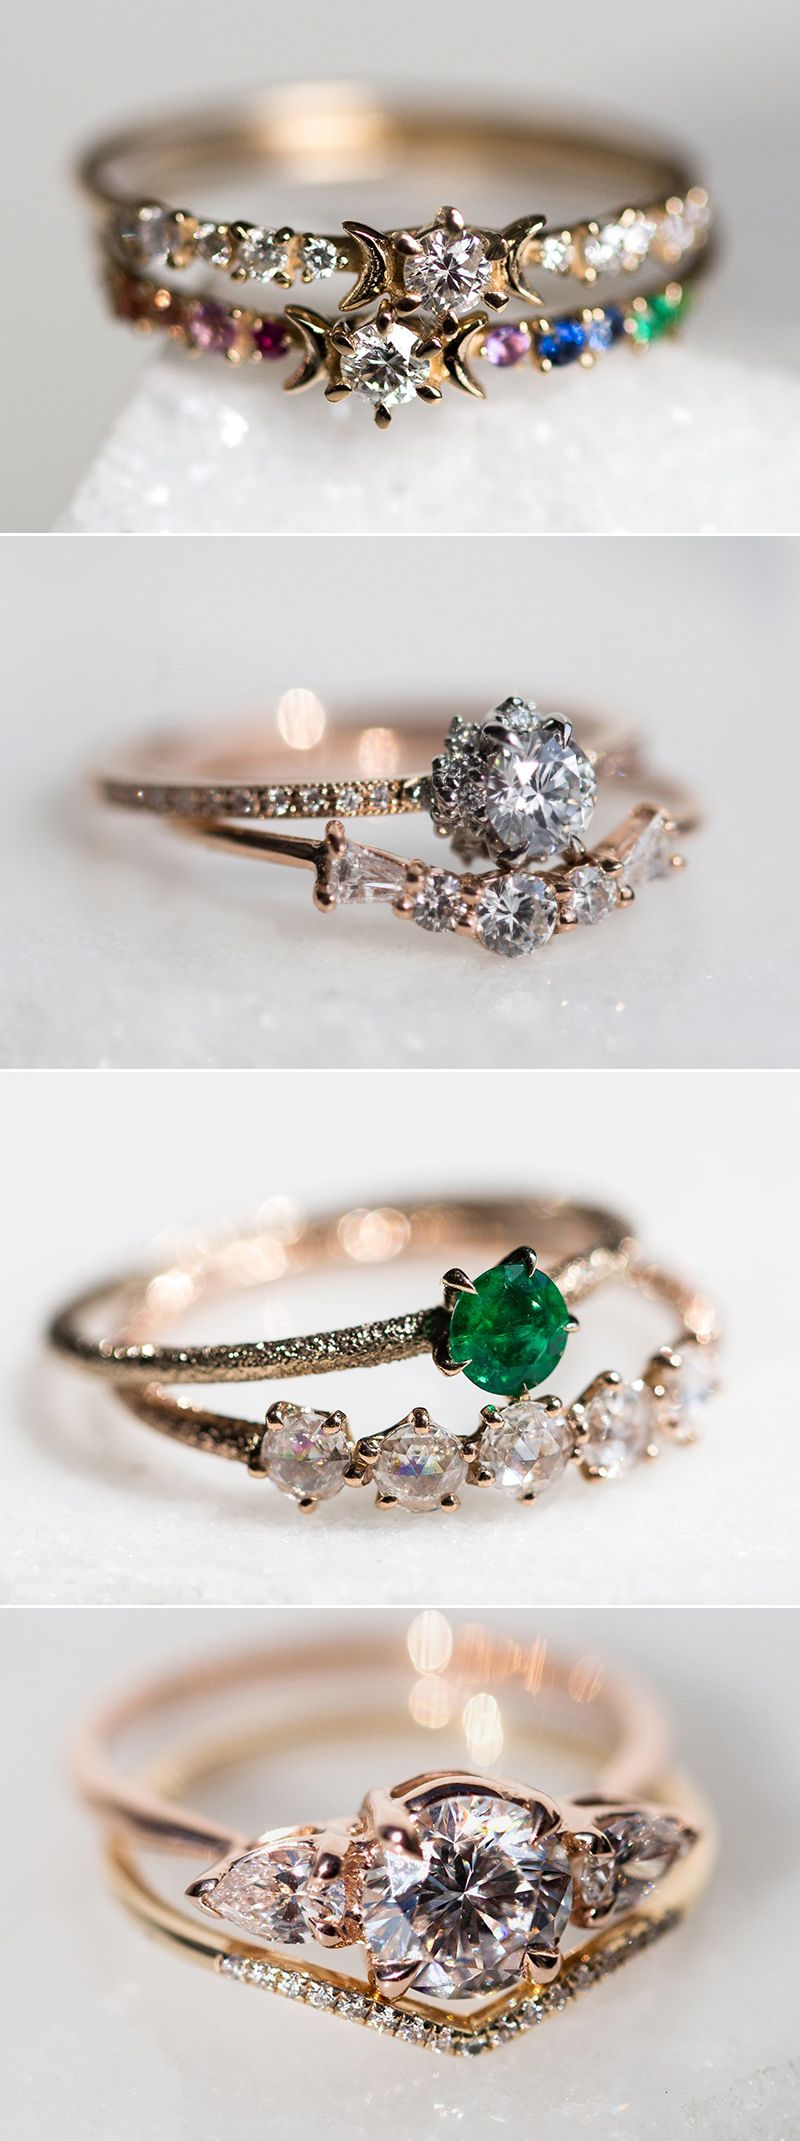 34 Alternative NonTraditional Engagement Rings